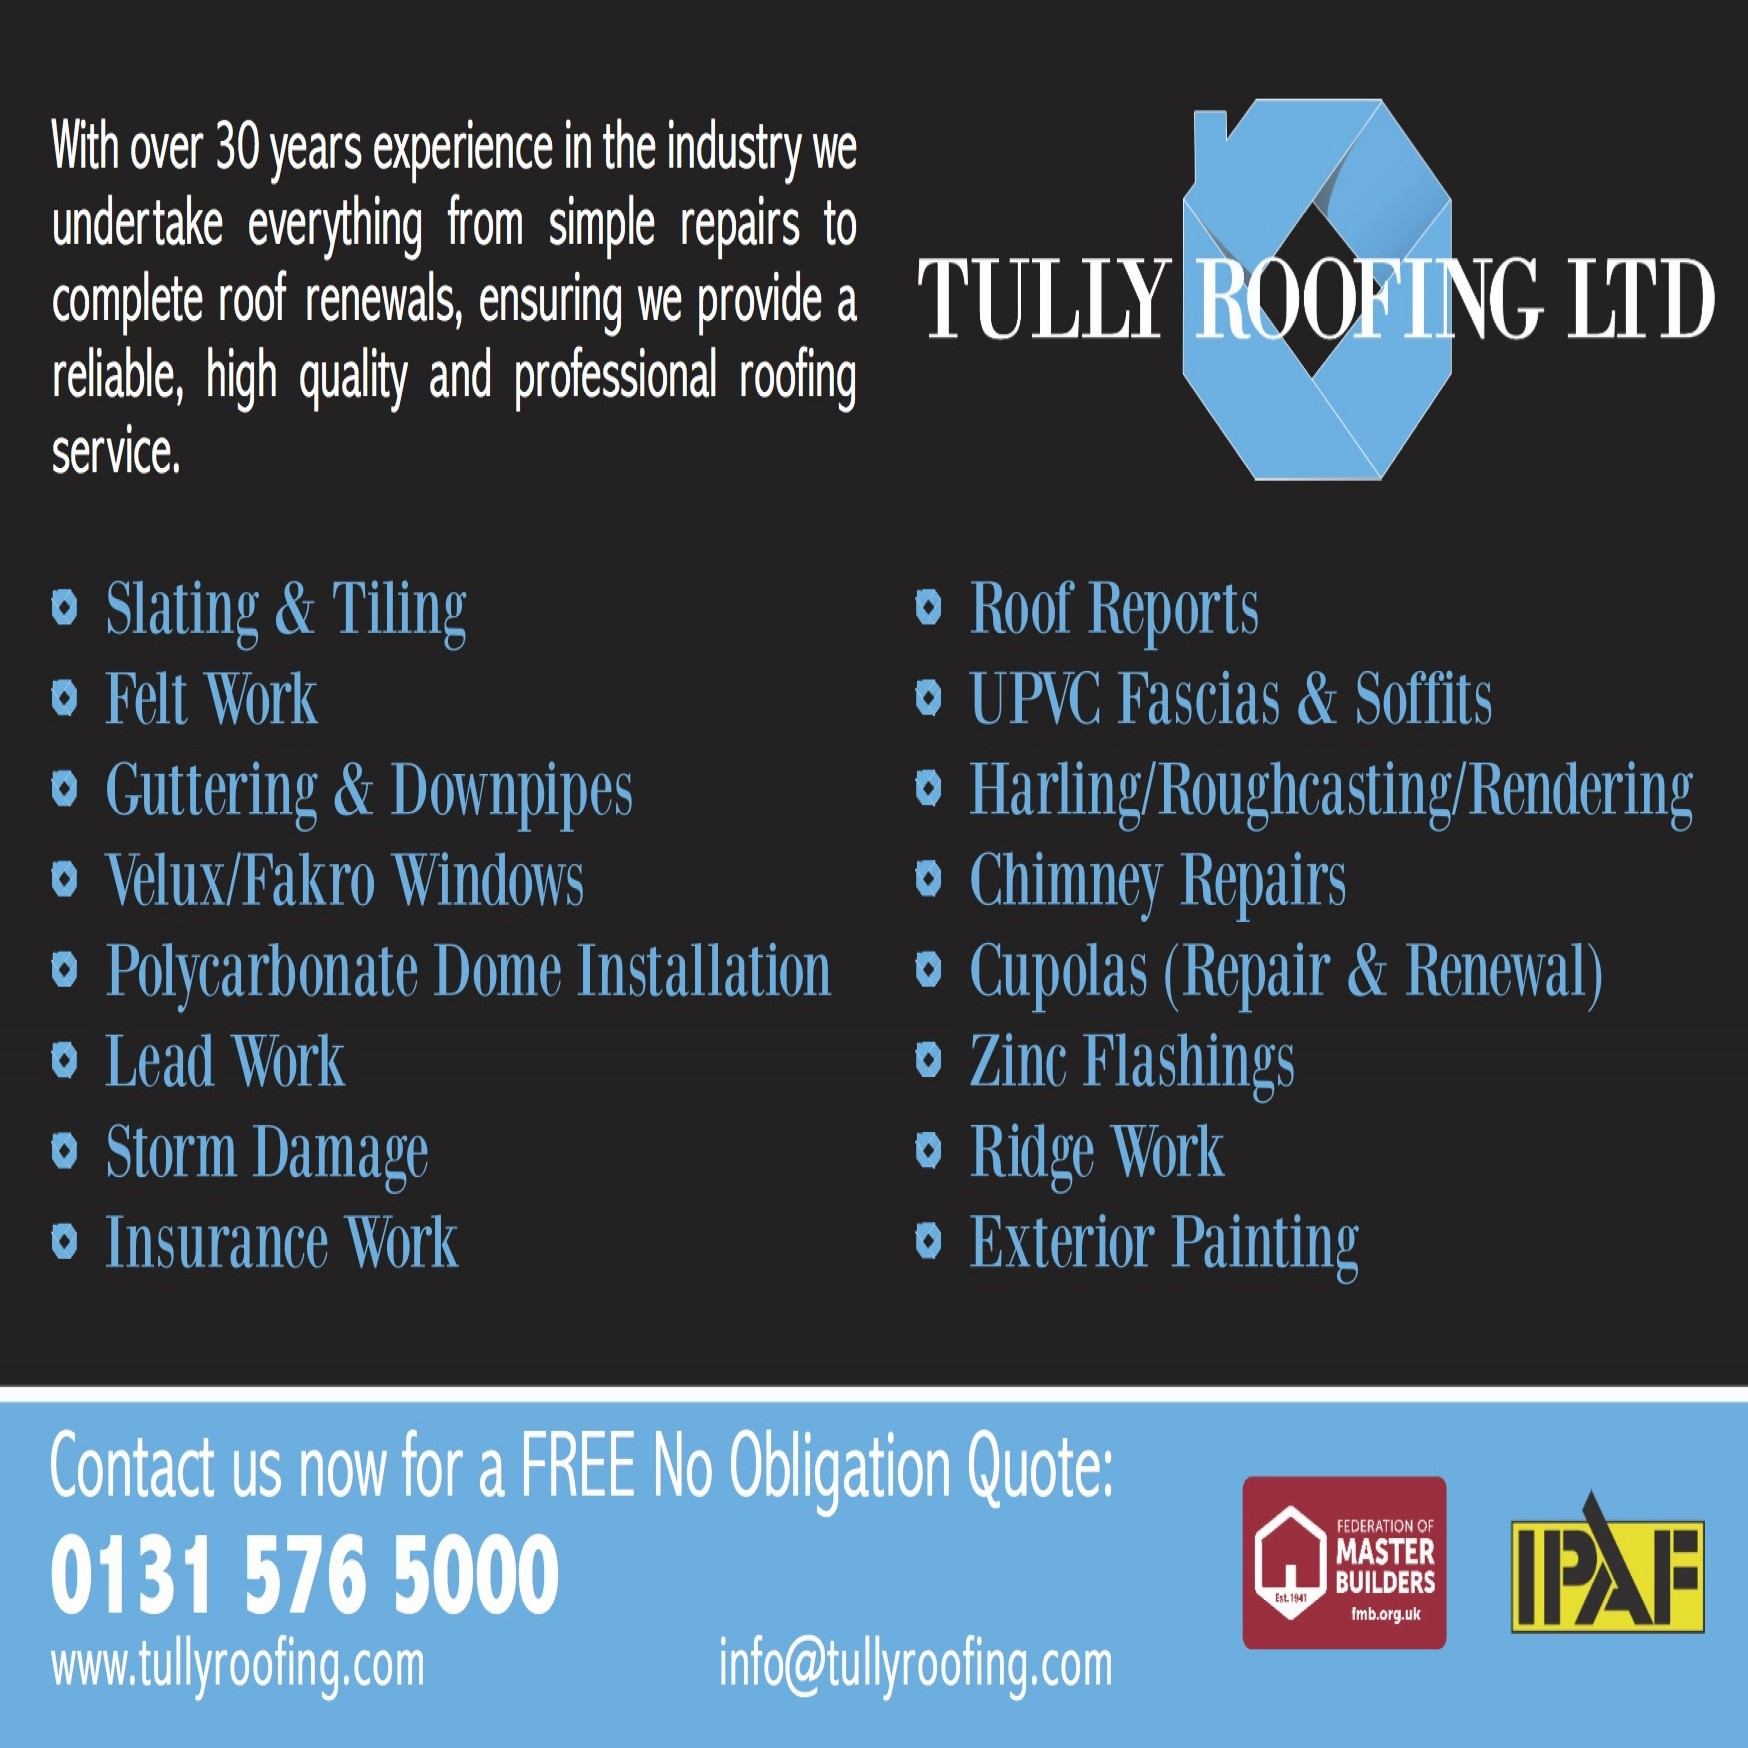 Tully Roofing Ltd